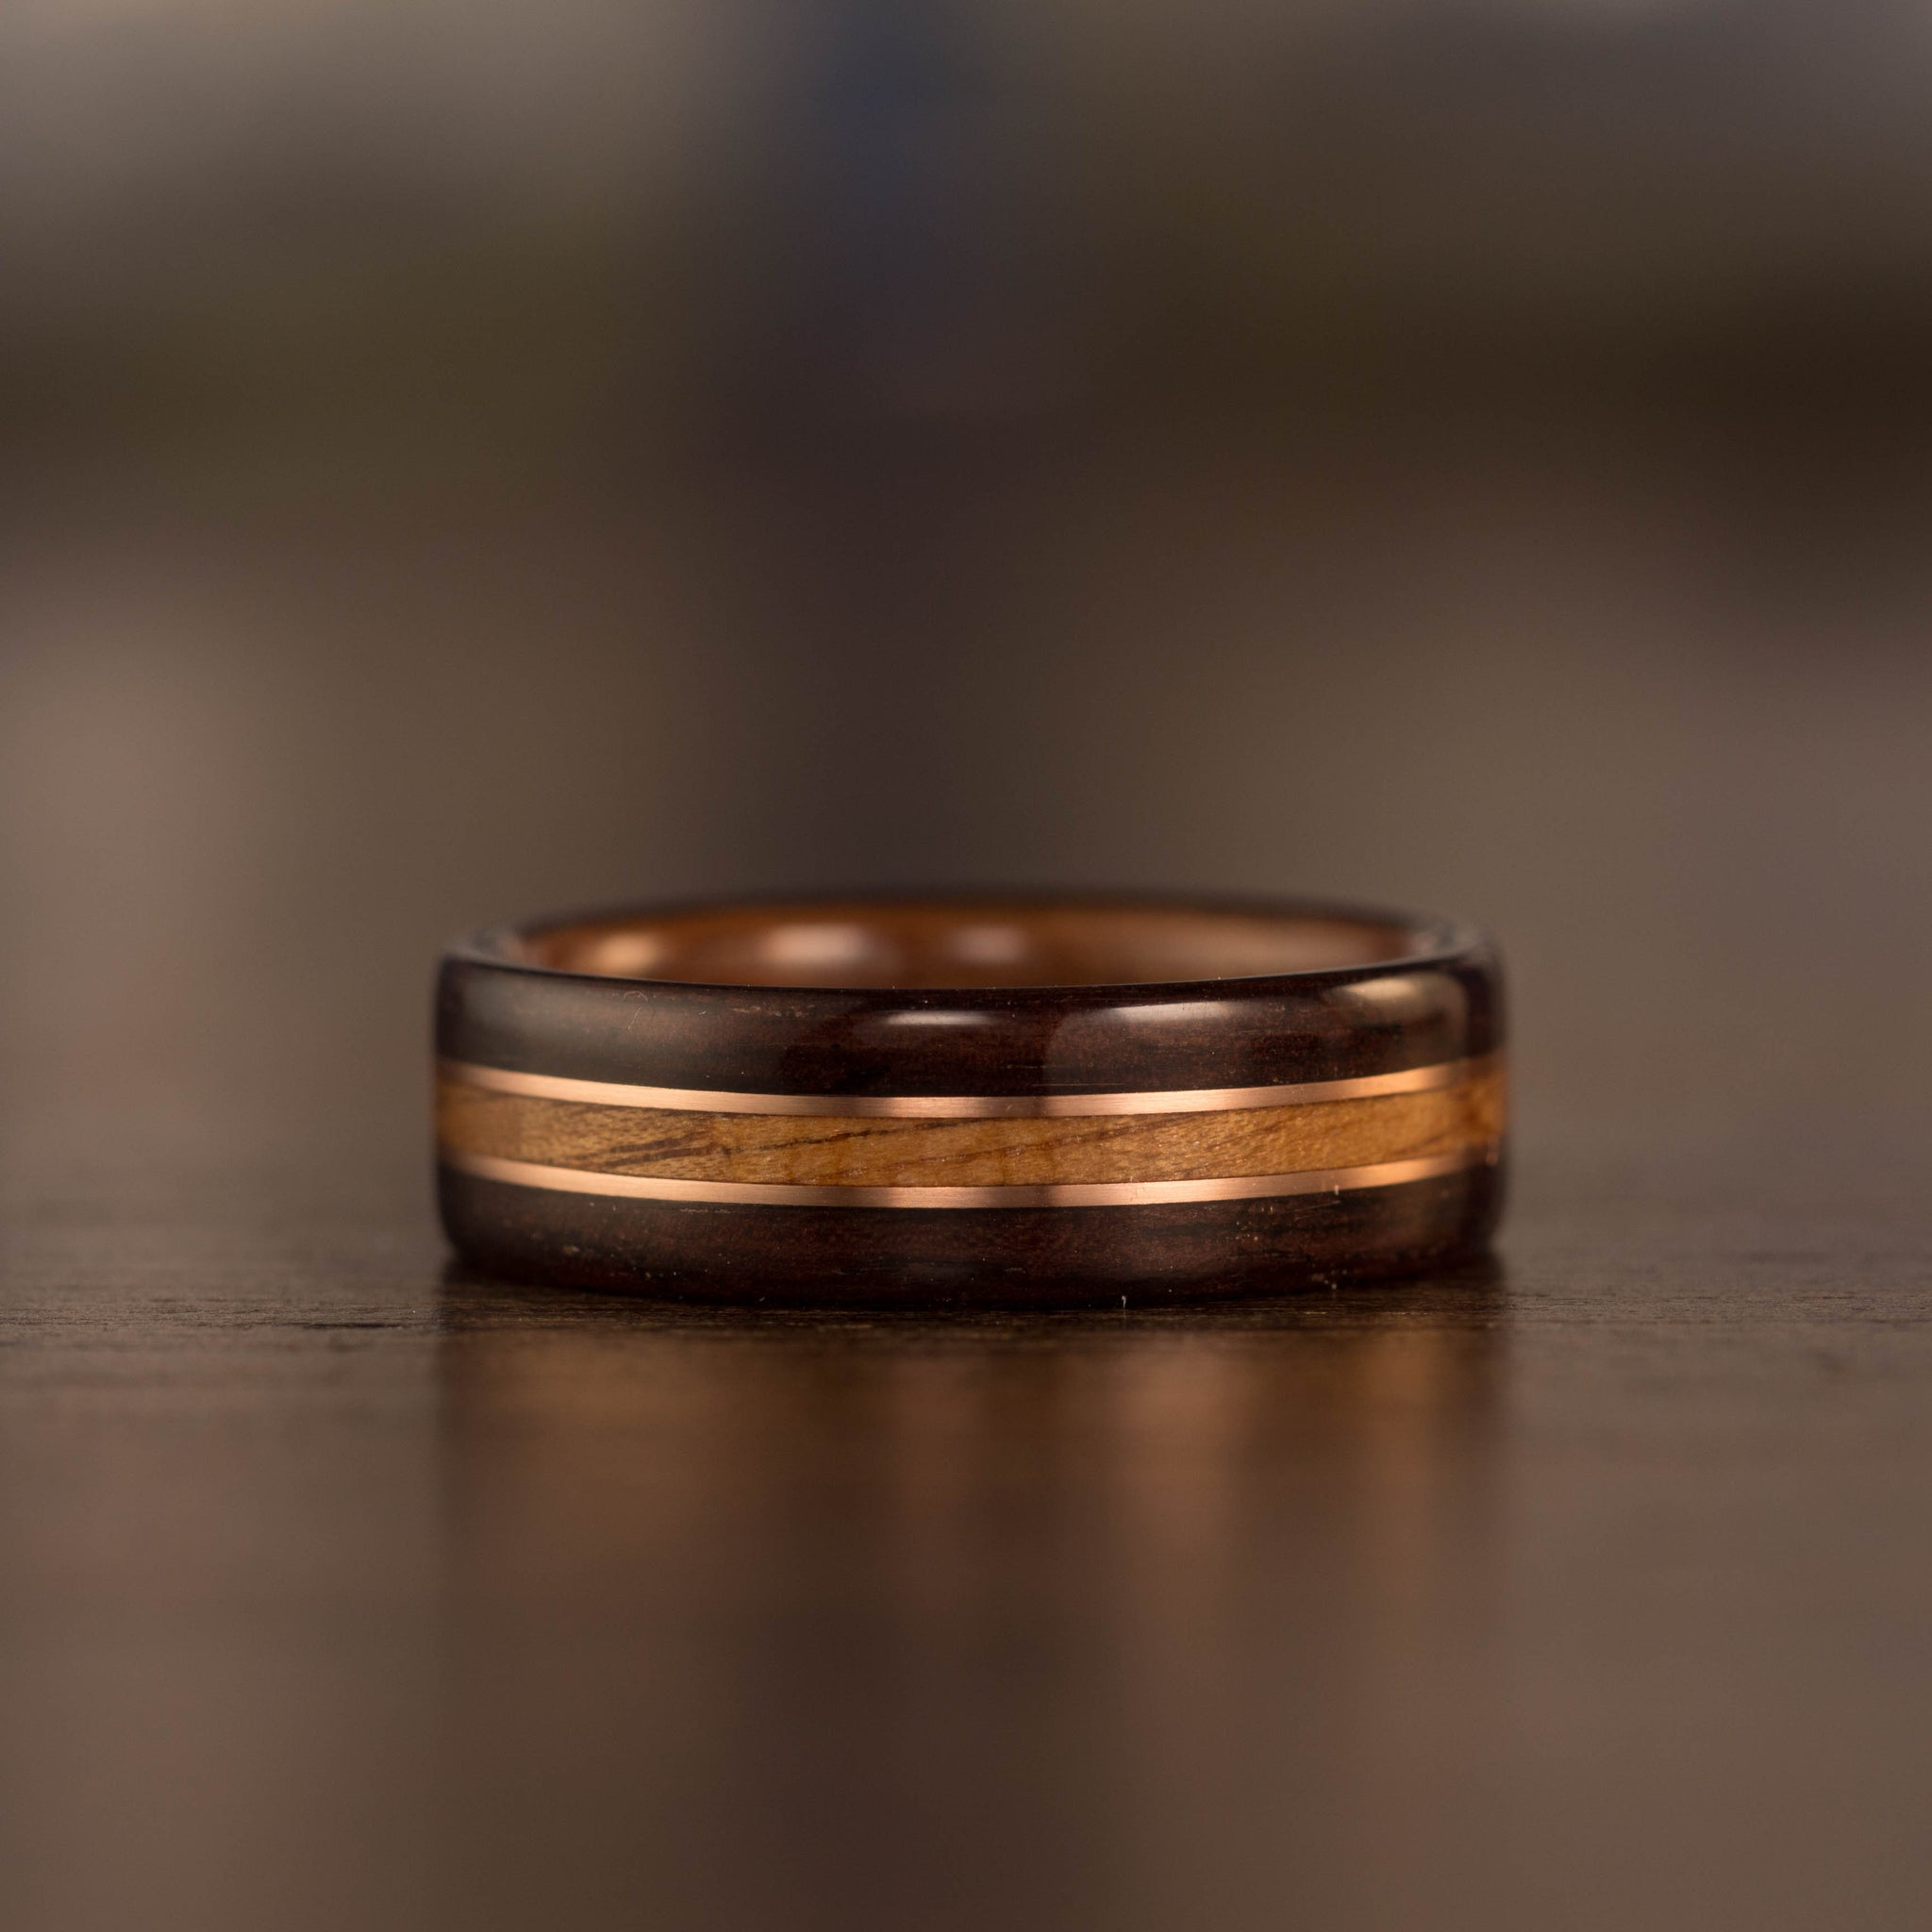 (In Stock) Rosewood w/ Antique Walnut & Rose Gold Inlays  Size 10.5/7mm